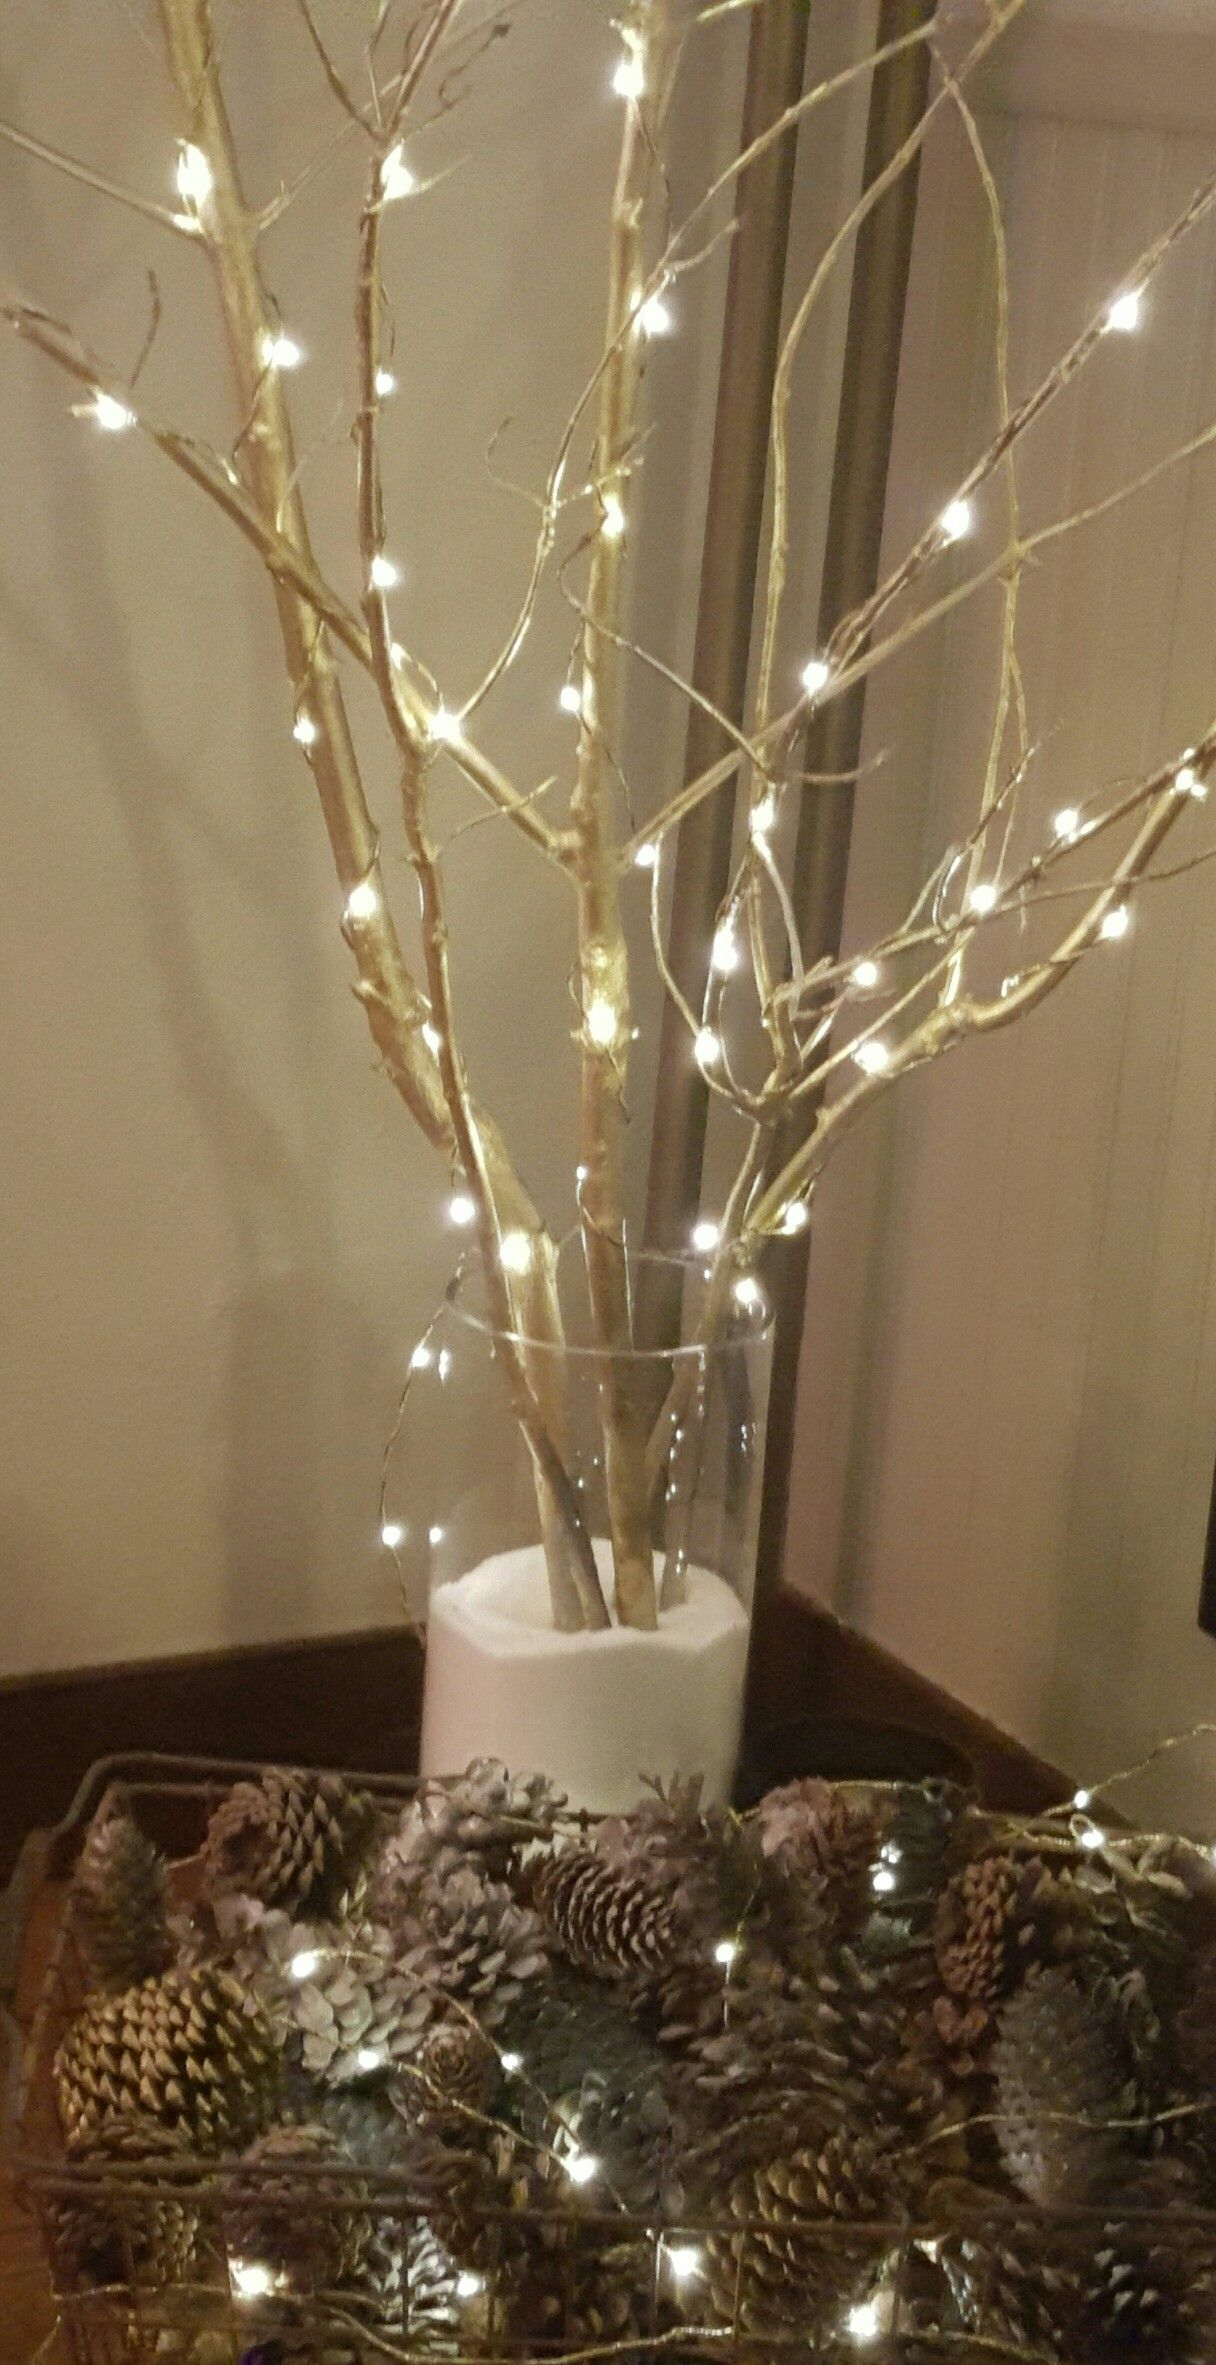 Microlites On Gold Tree Branches In A Vase Of Epsom Salt Tree Branch Decor Gold Tree Branch Centerpiece Tree Branch Centerpieces